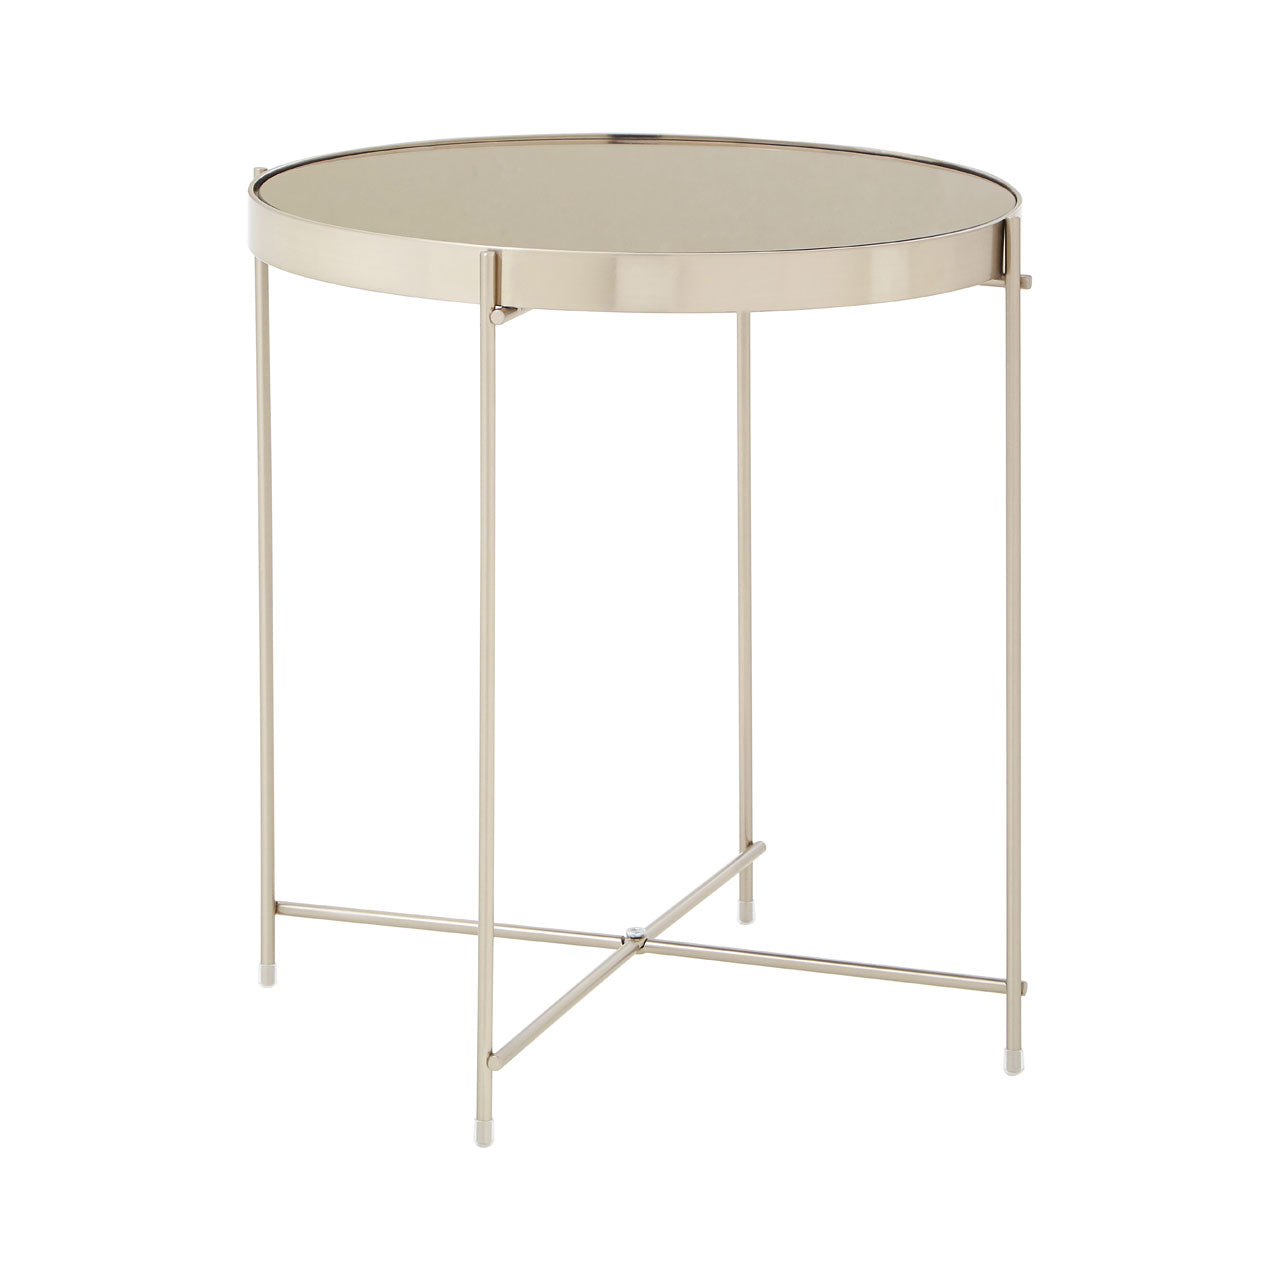 Allure Side Table Grey - Ezzo